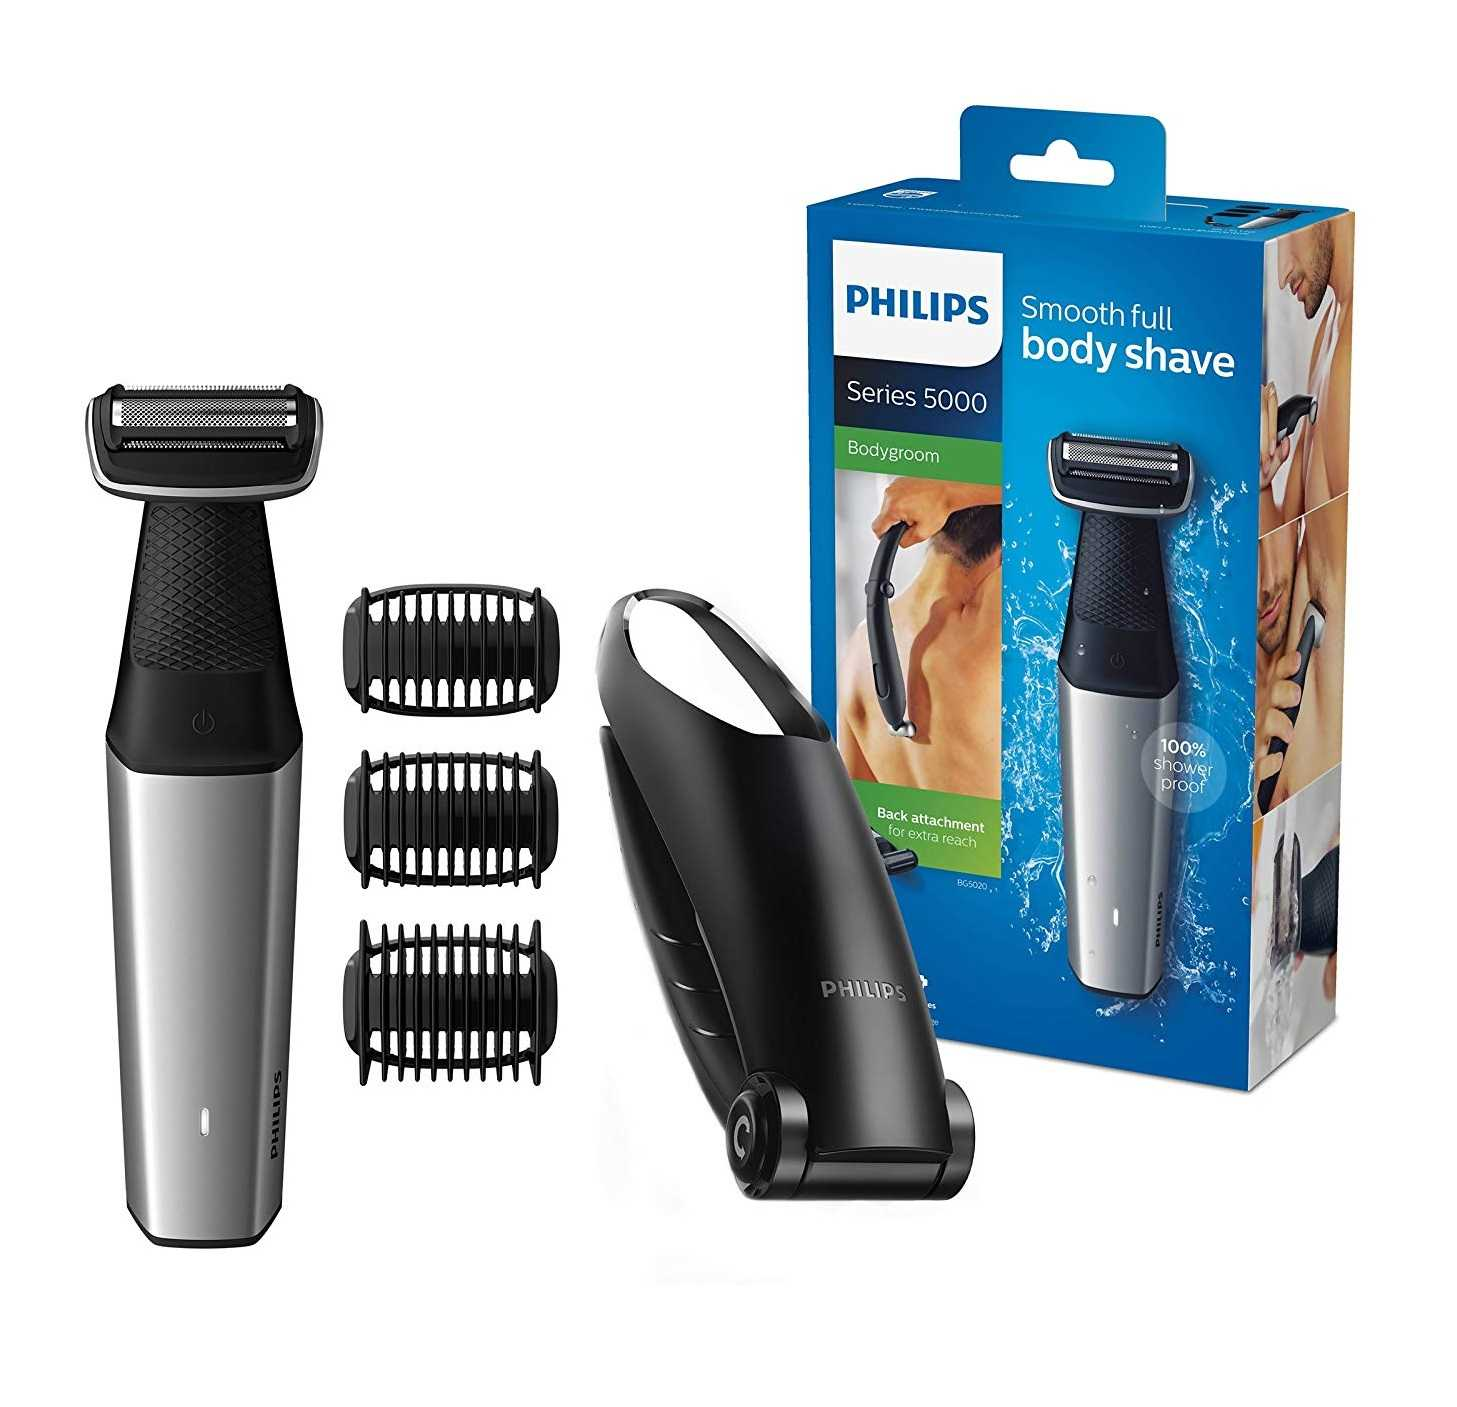 Philips Bodygroom Series 5000 Trimmer/Rasierer Set für 36,29€ (statt 48€)